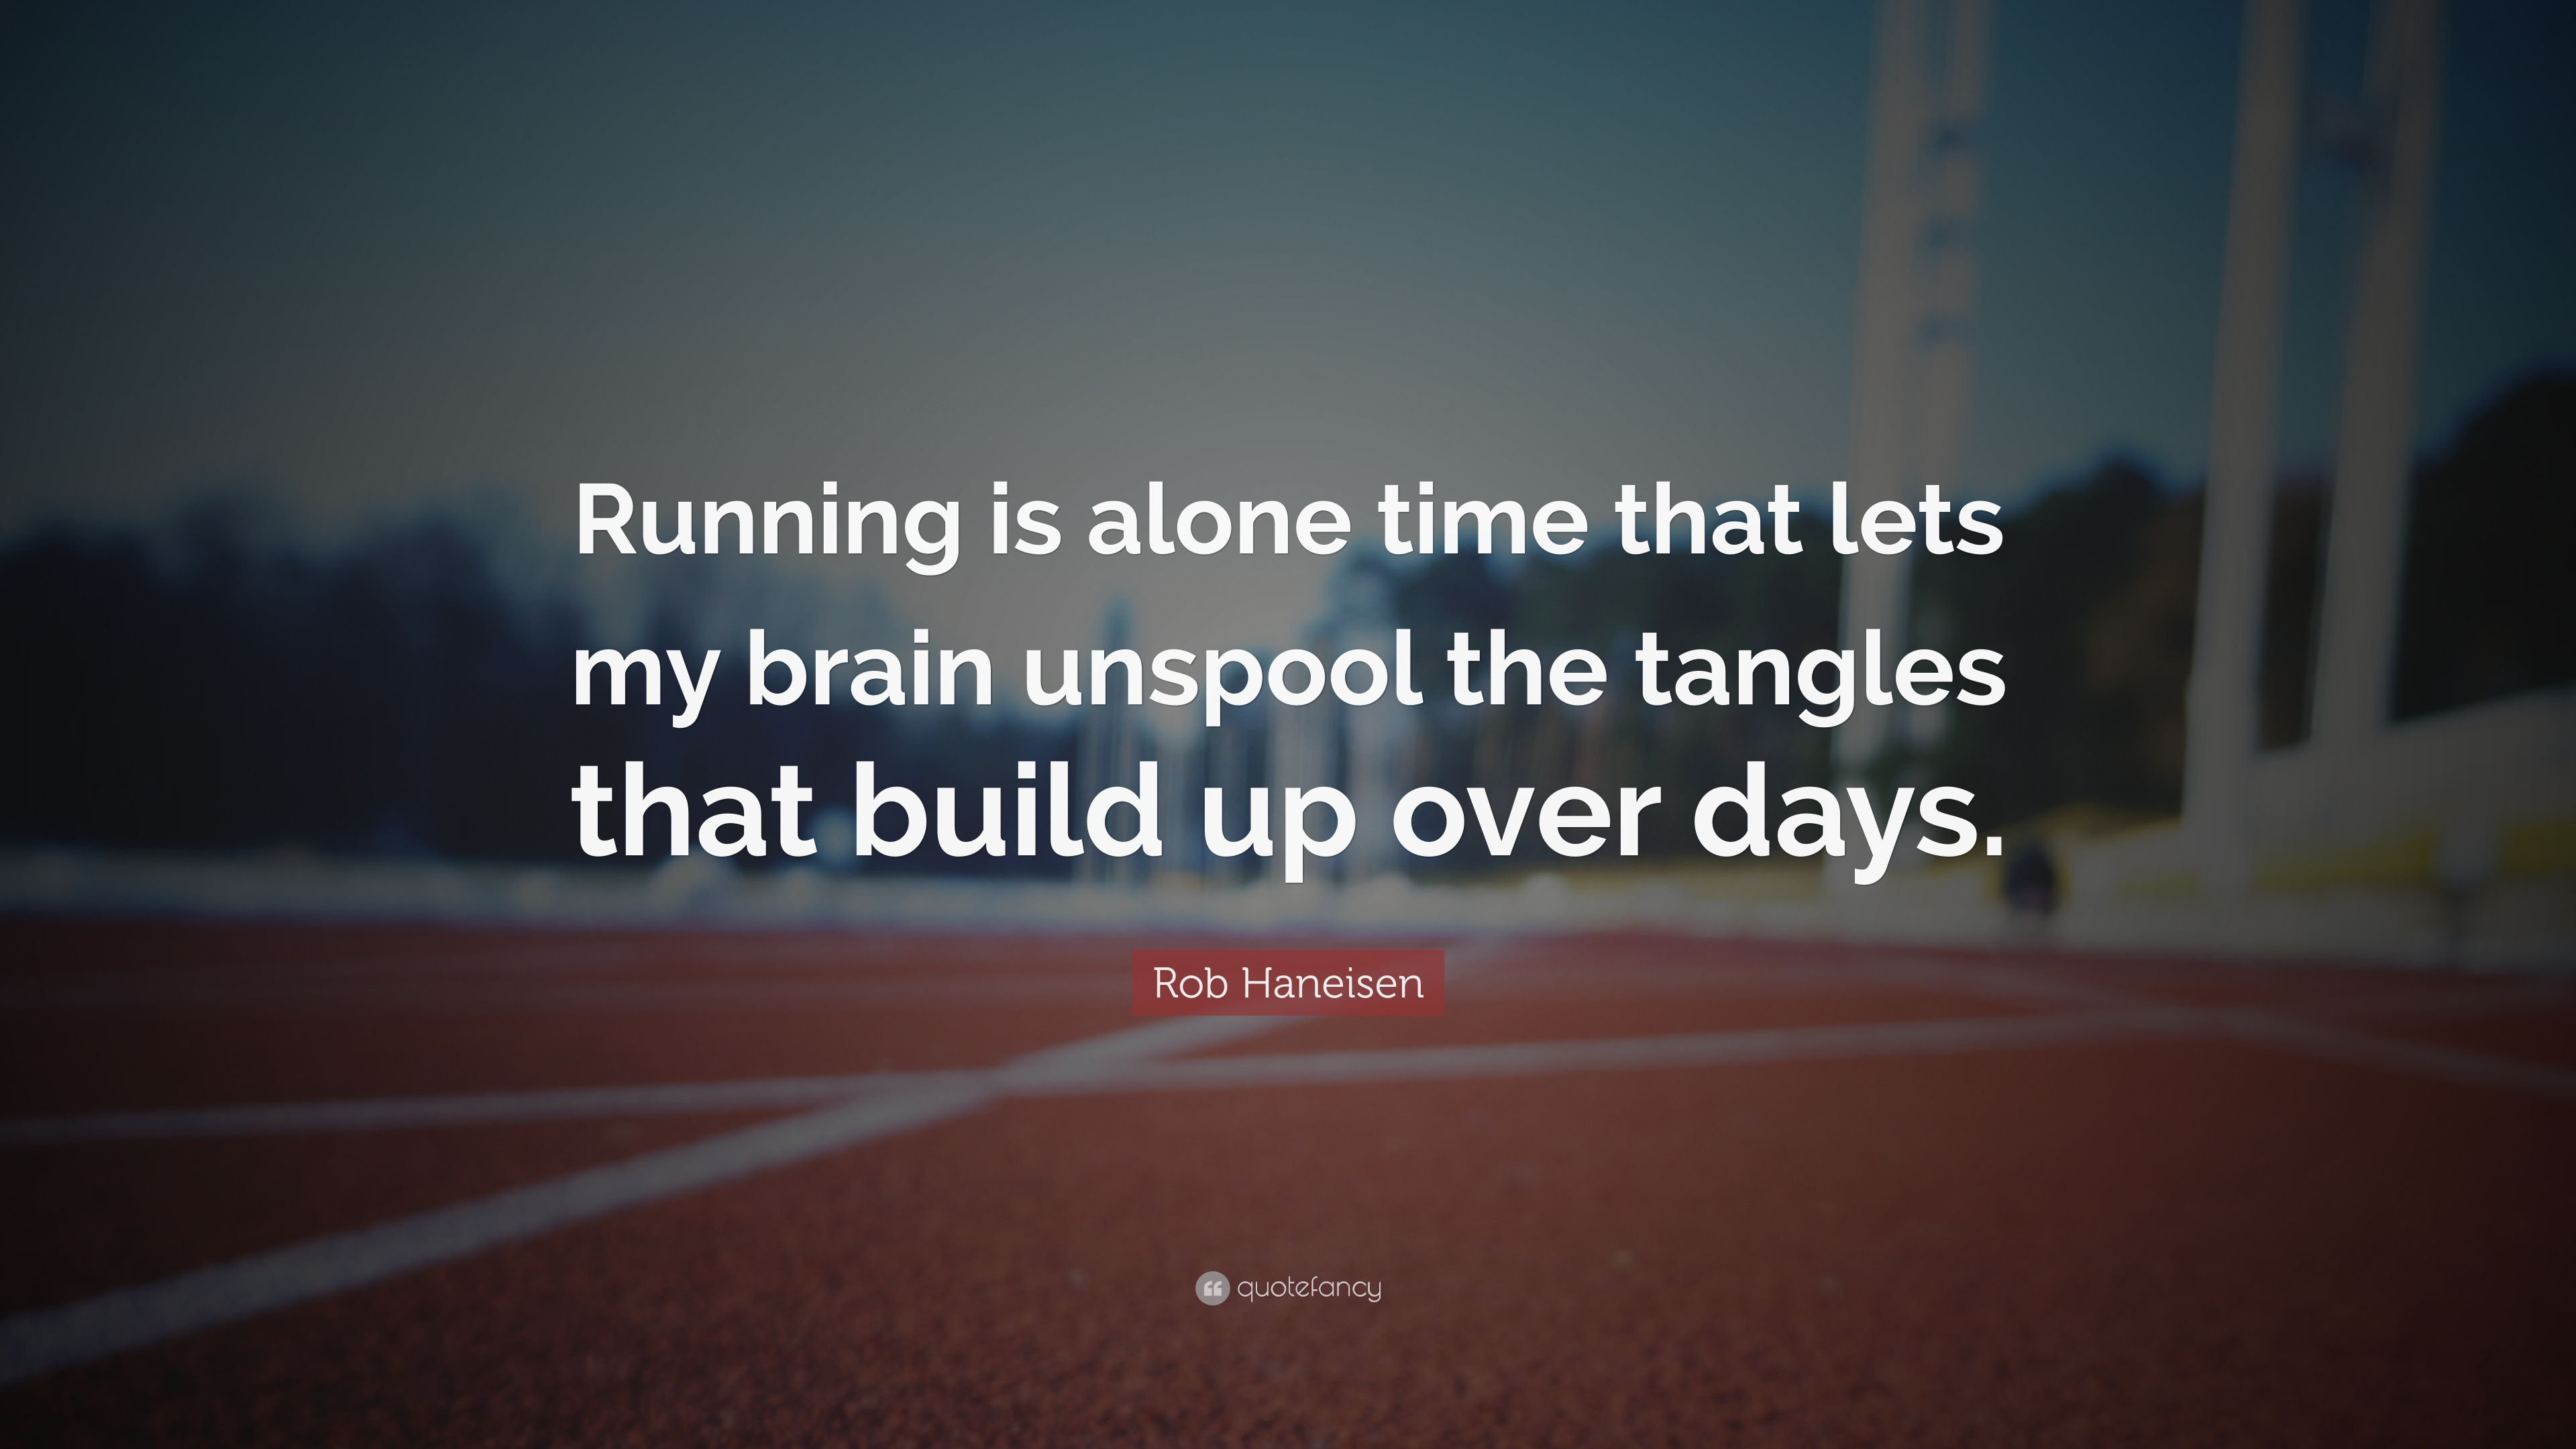 Image result for Running is alone time that lets my brain unspool the tangles that build up over days.